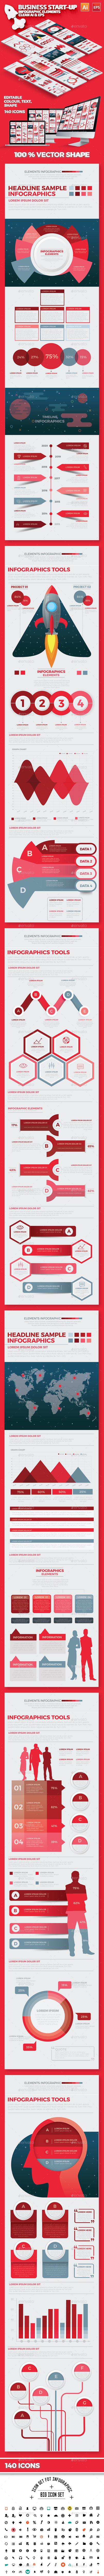 Business - Start Up Infographic Design - Infographics